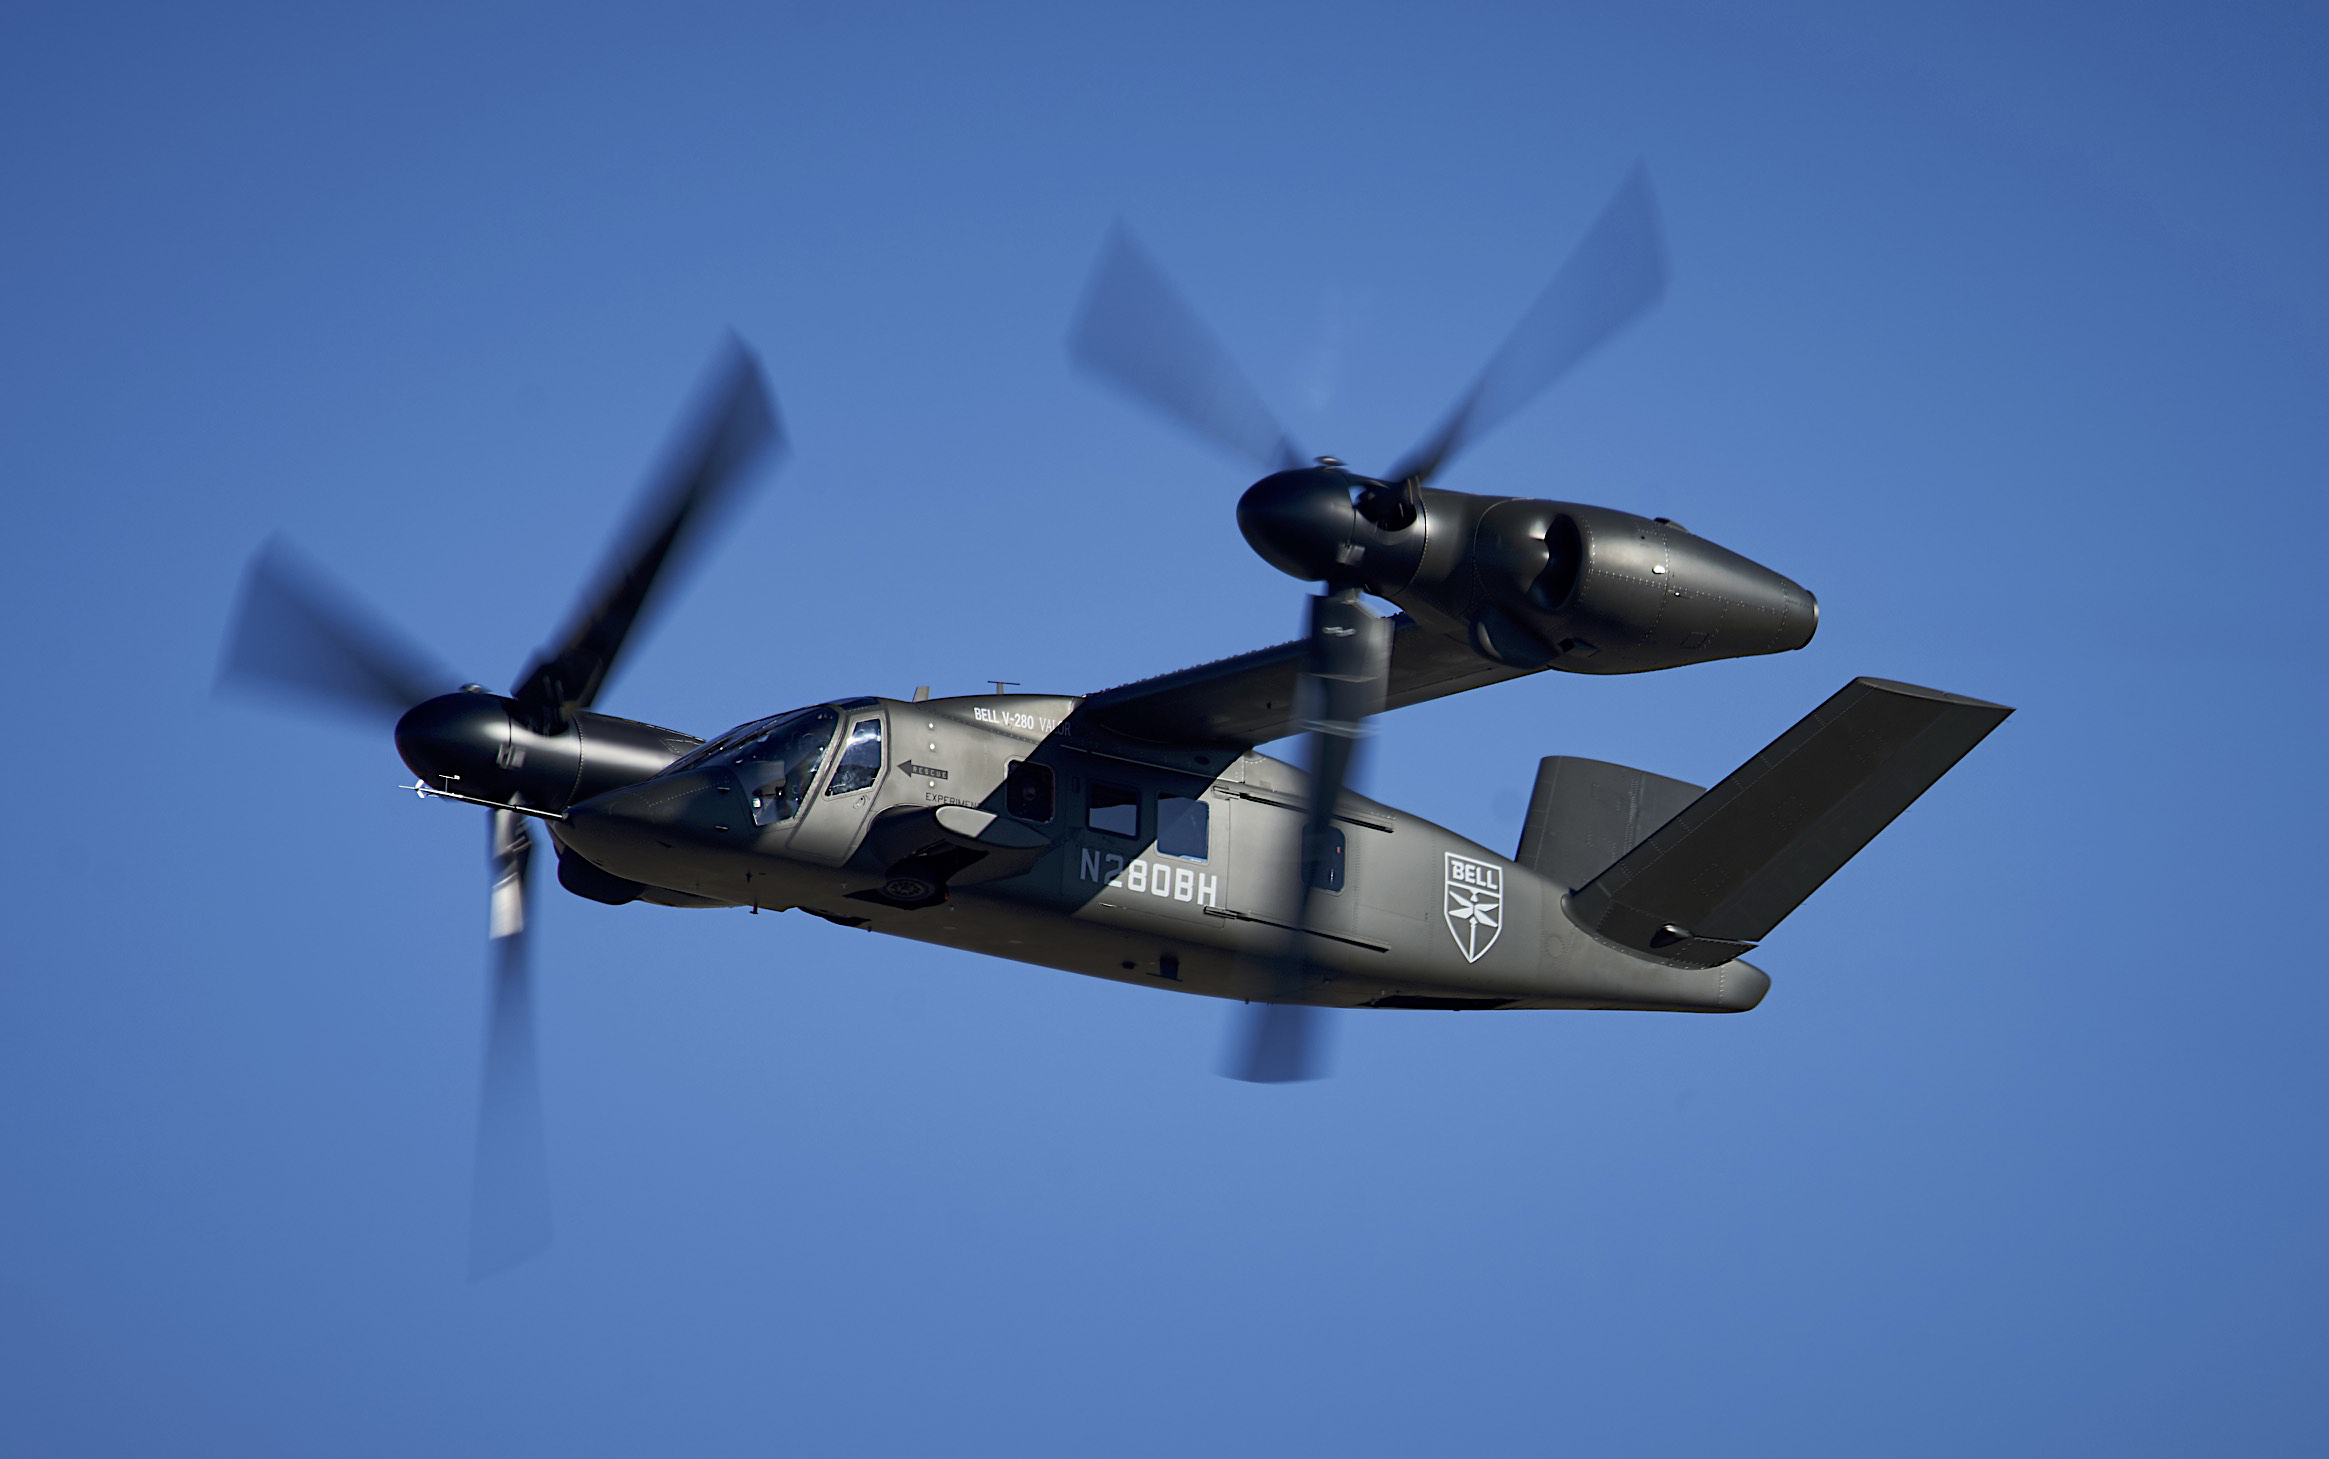 The V-280 expects to complete all the key performance parameters in the coming months, including additional low-speed agility tests and full cruise speed in forward flight. Bell Photo